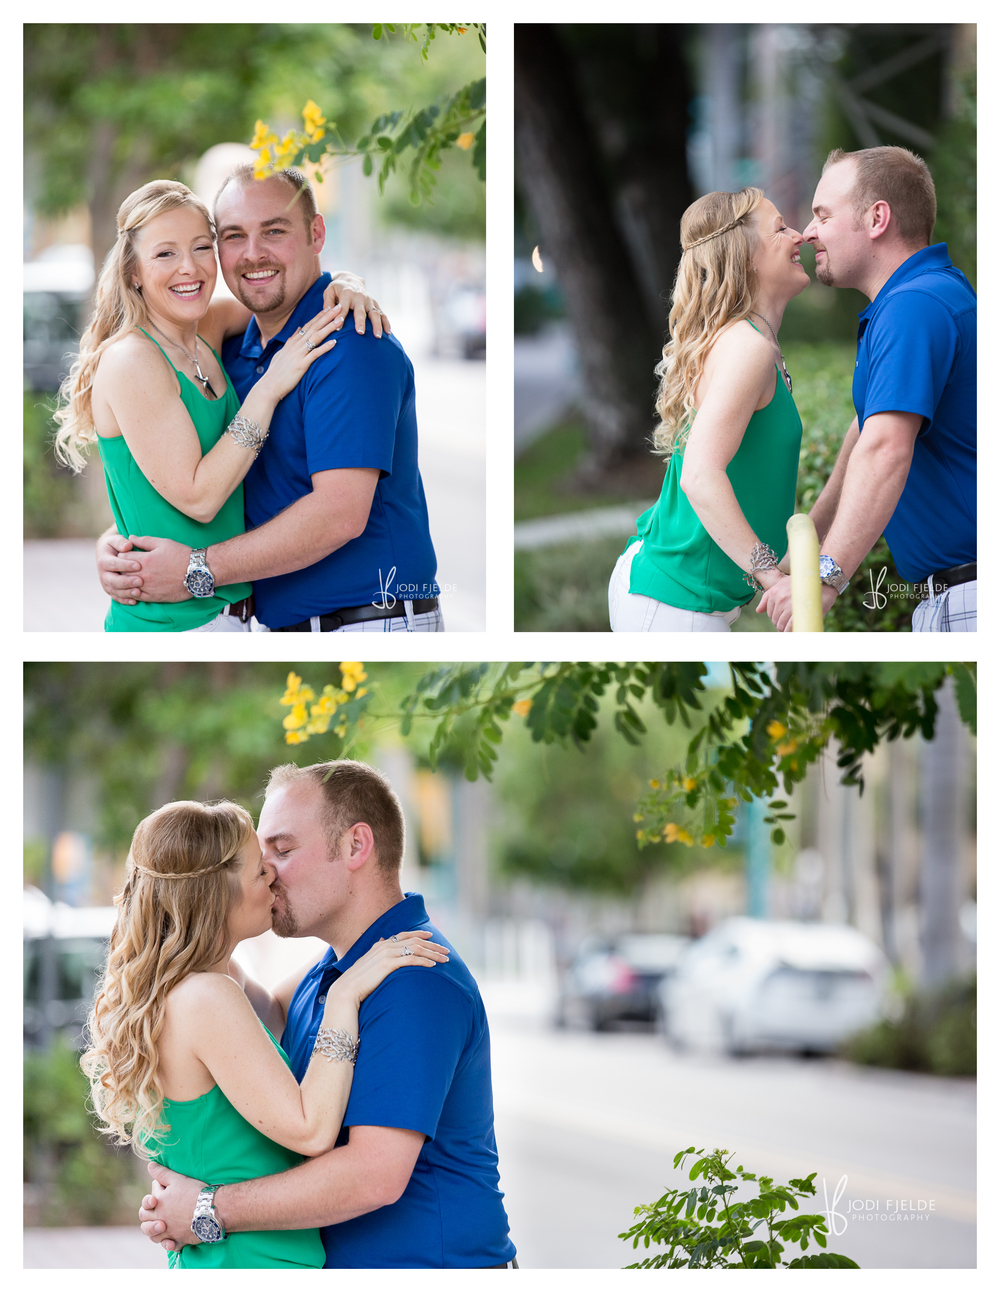 Delray Beach Engagement Photography Jenna & Bryan 4.jpg